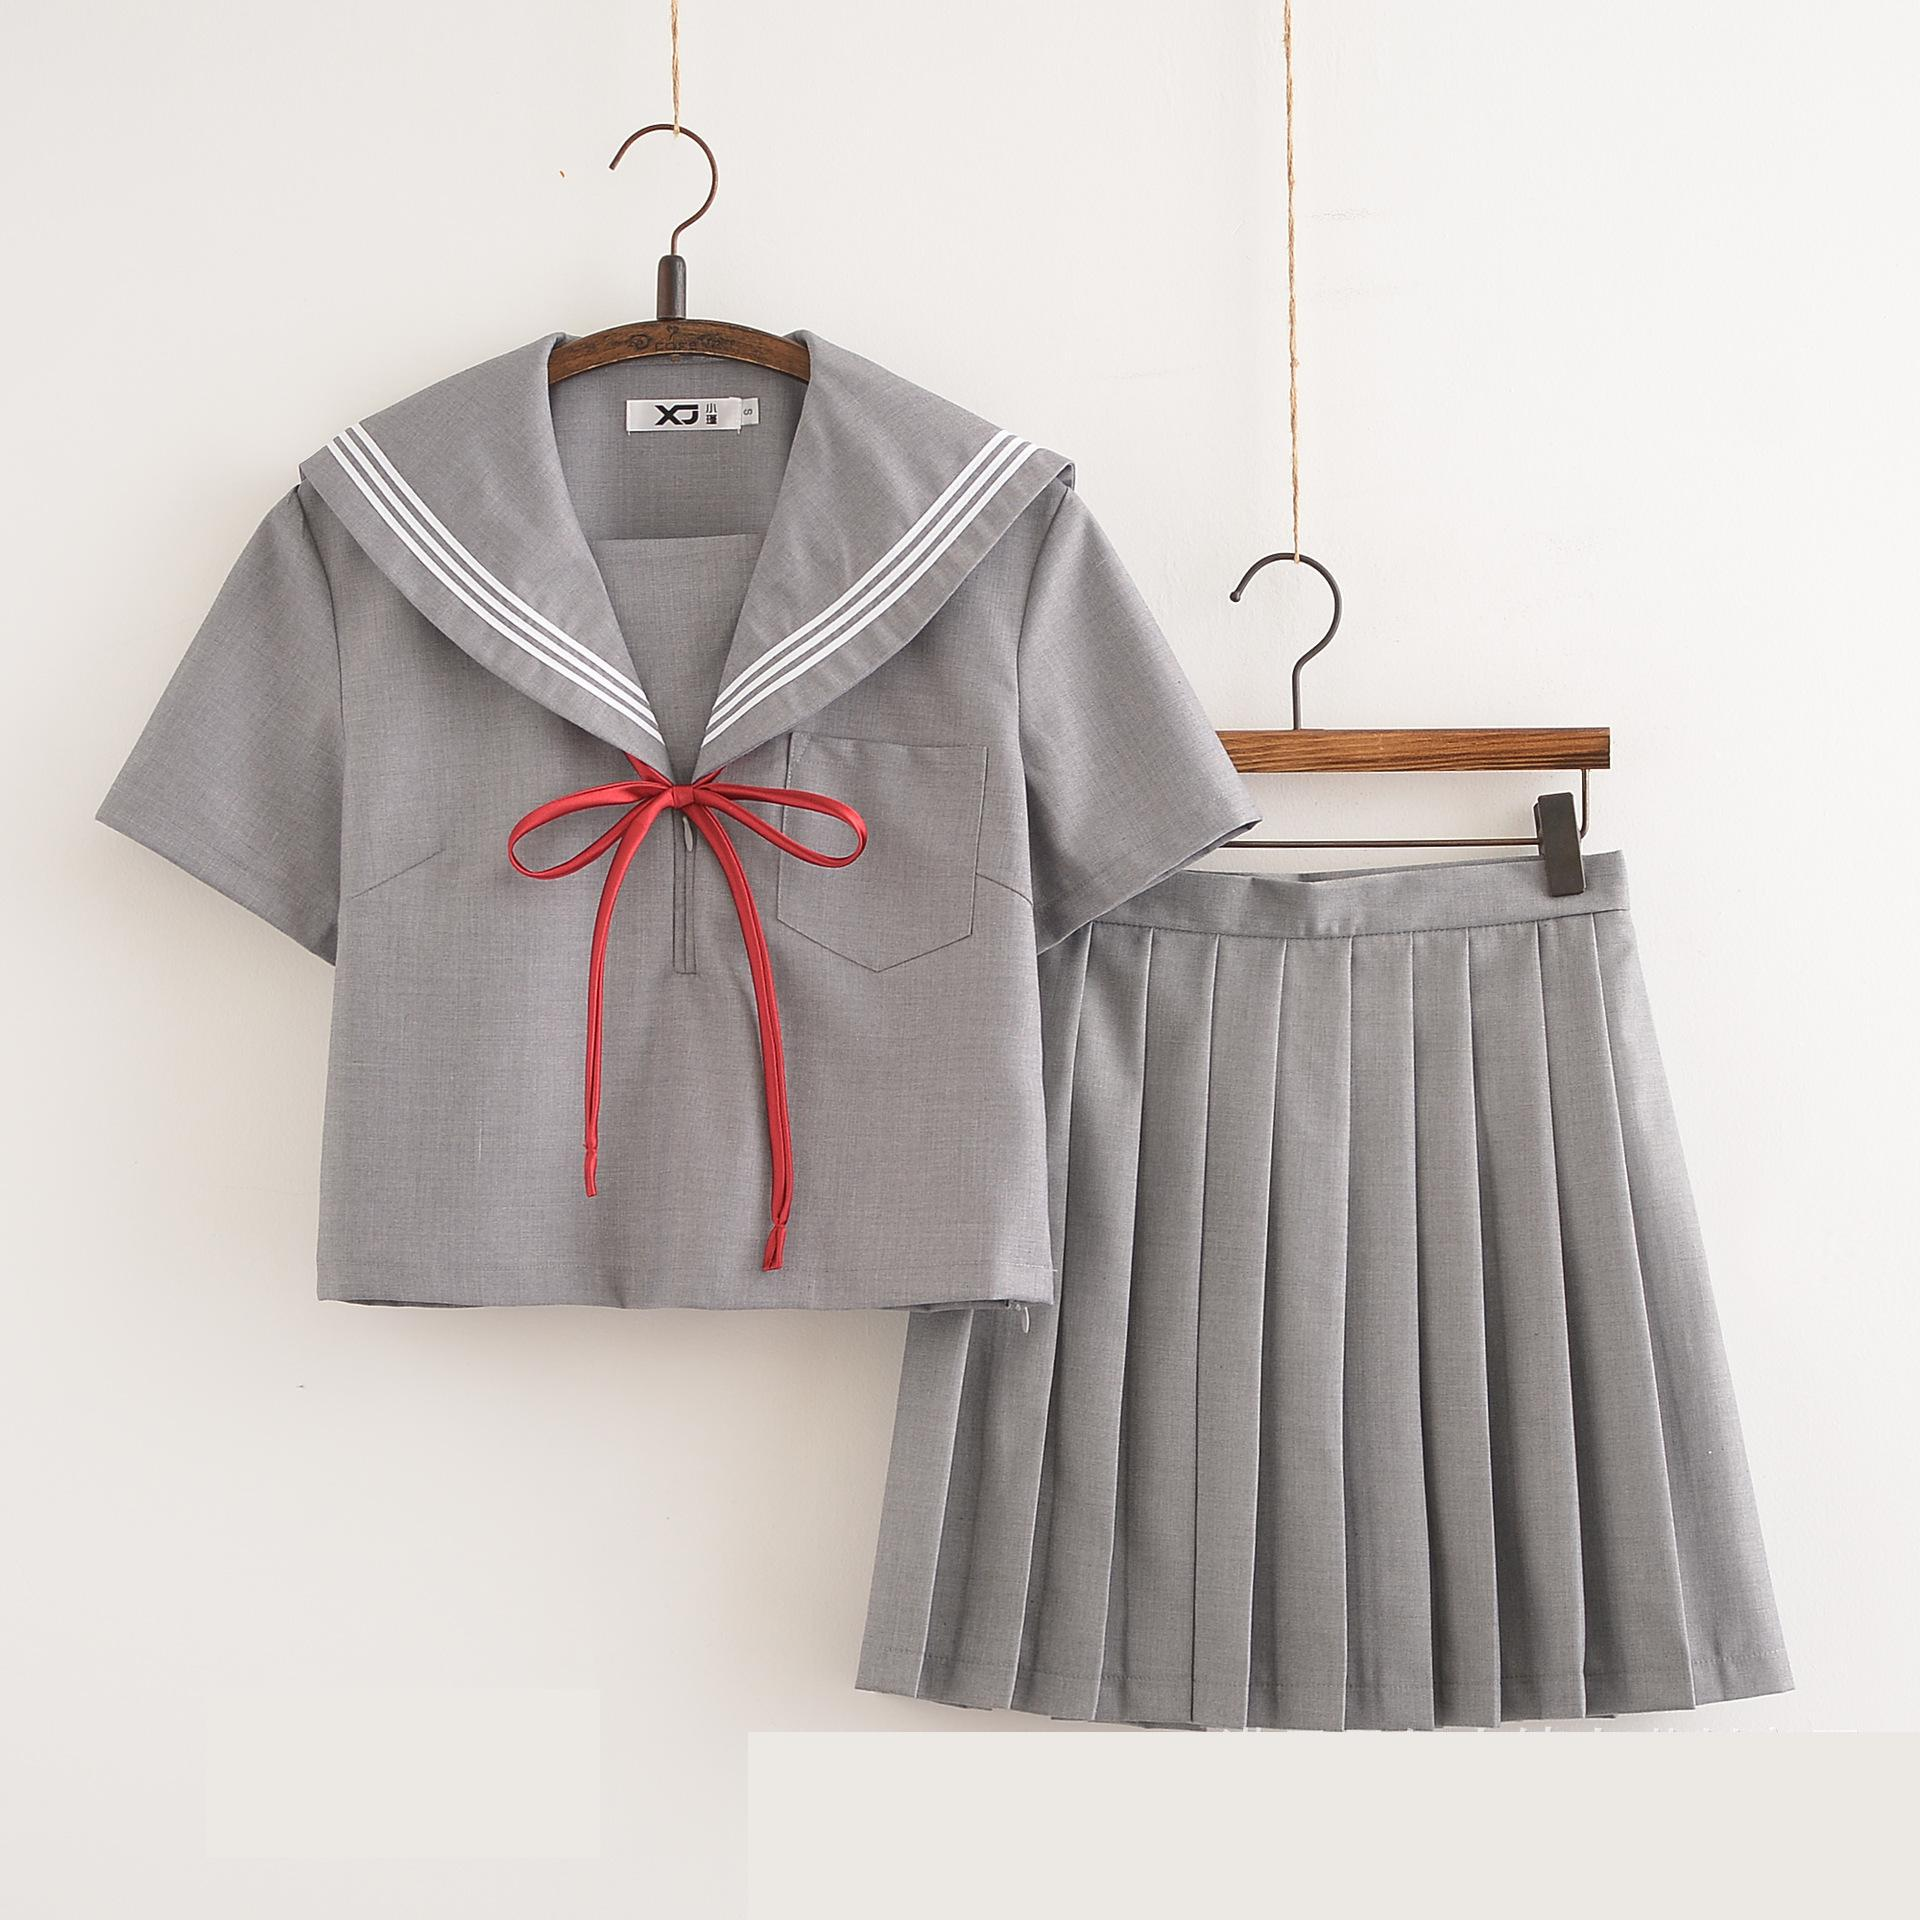 Costume School Girl Uniform Short Sleeves Japanese Korea Students Pleated Skirt Suit Gray Color Cosplay Clothes Sailor Uniform